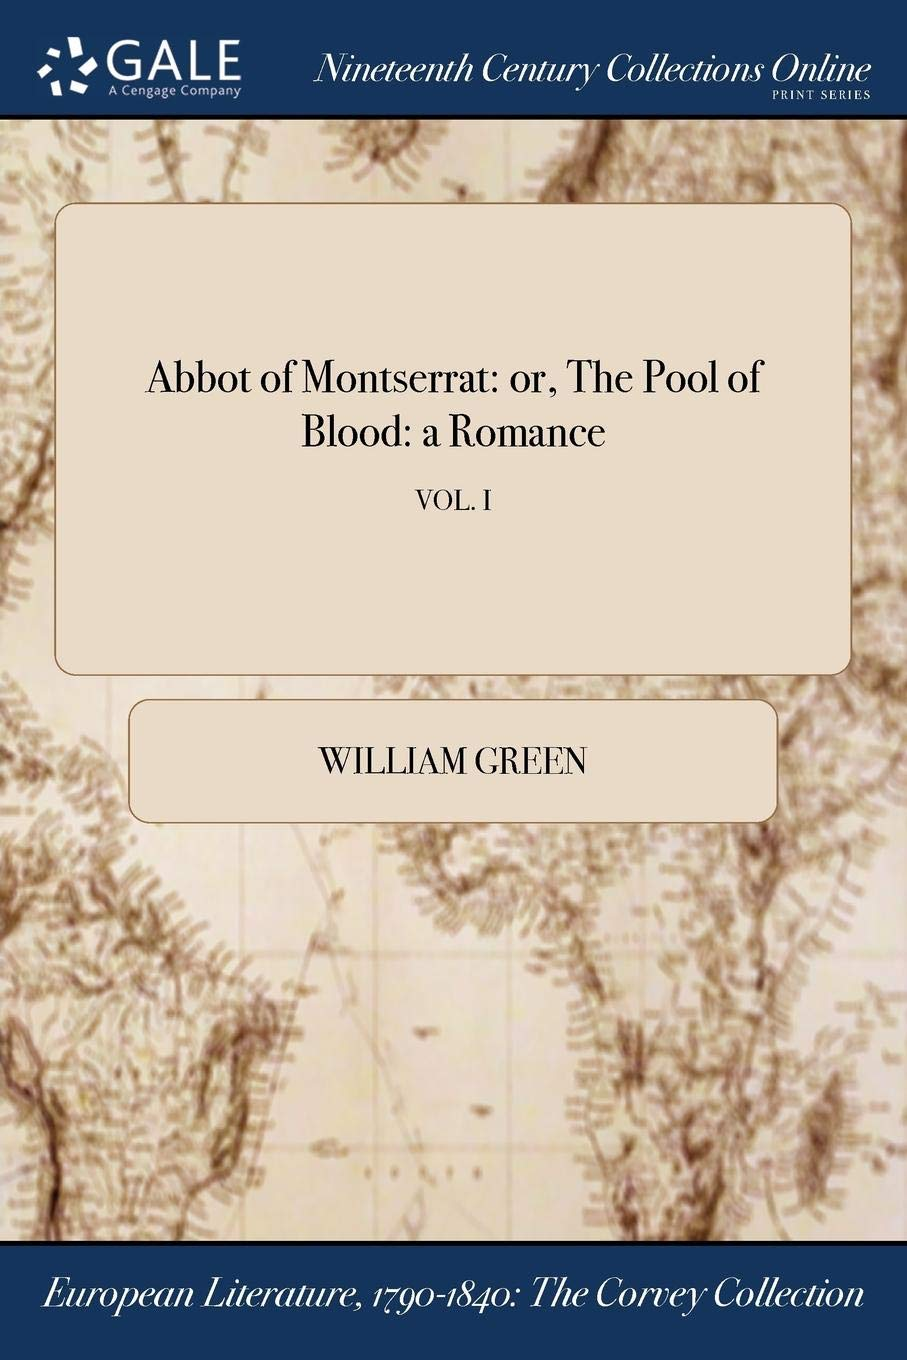 Amazon com: Abbot of Montserrat: or, The Pool of Blood: a Romance